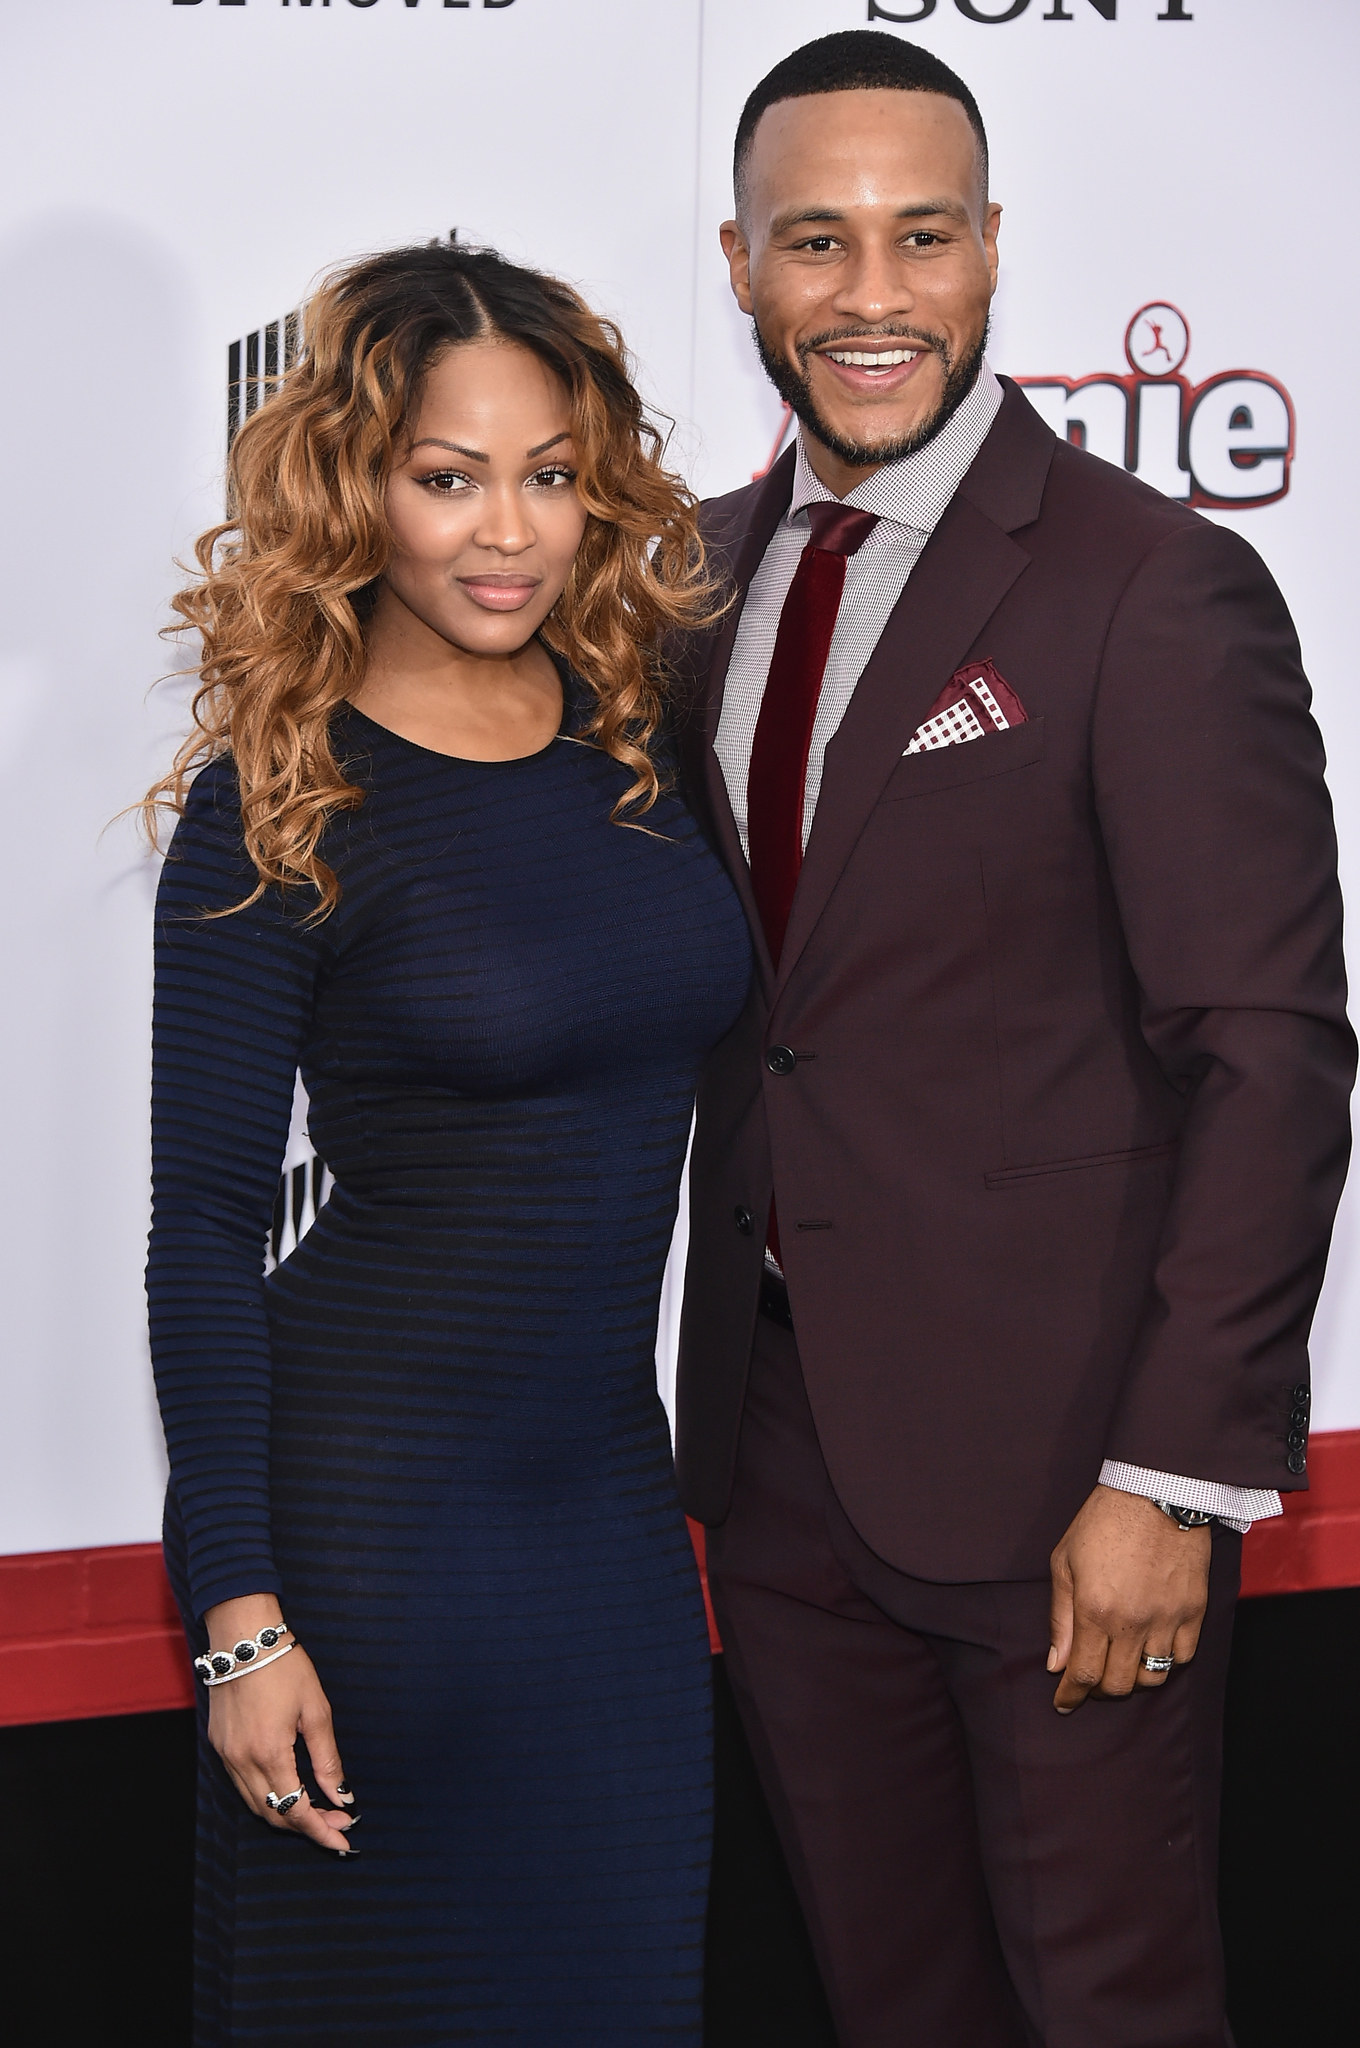 Meagan Good and DeVon Franklin at an event for Annie (2014)